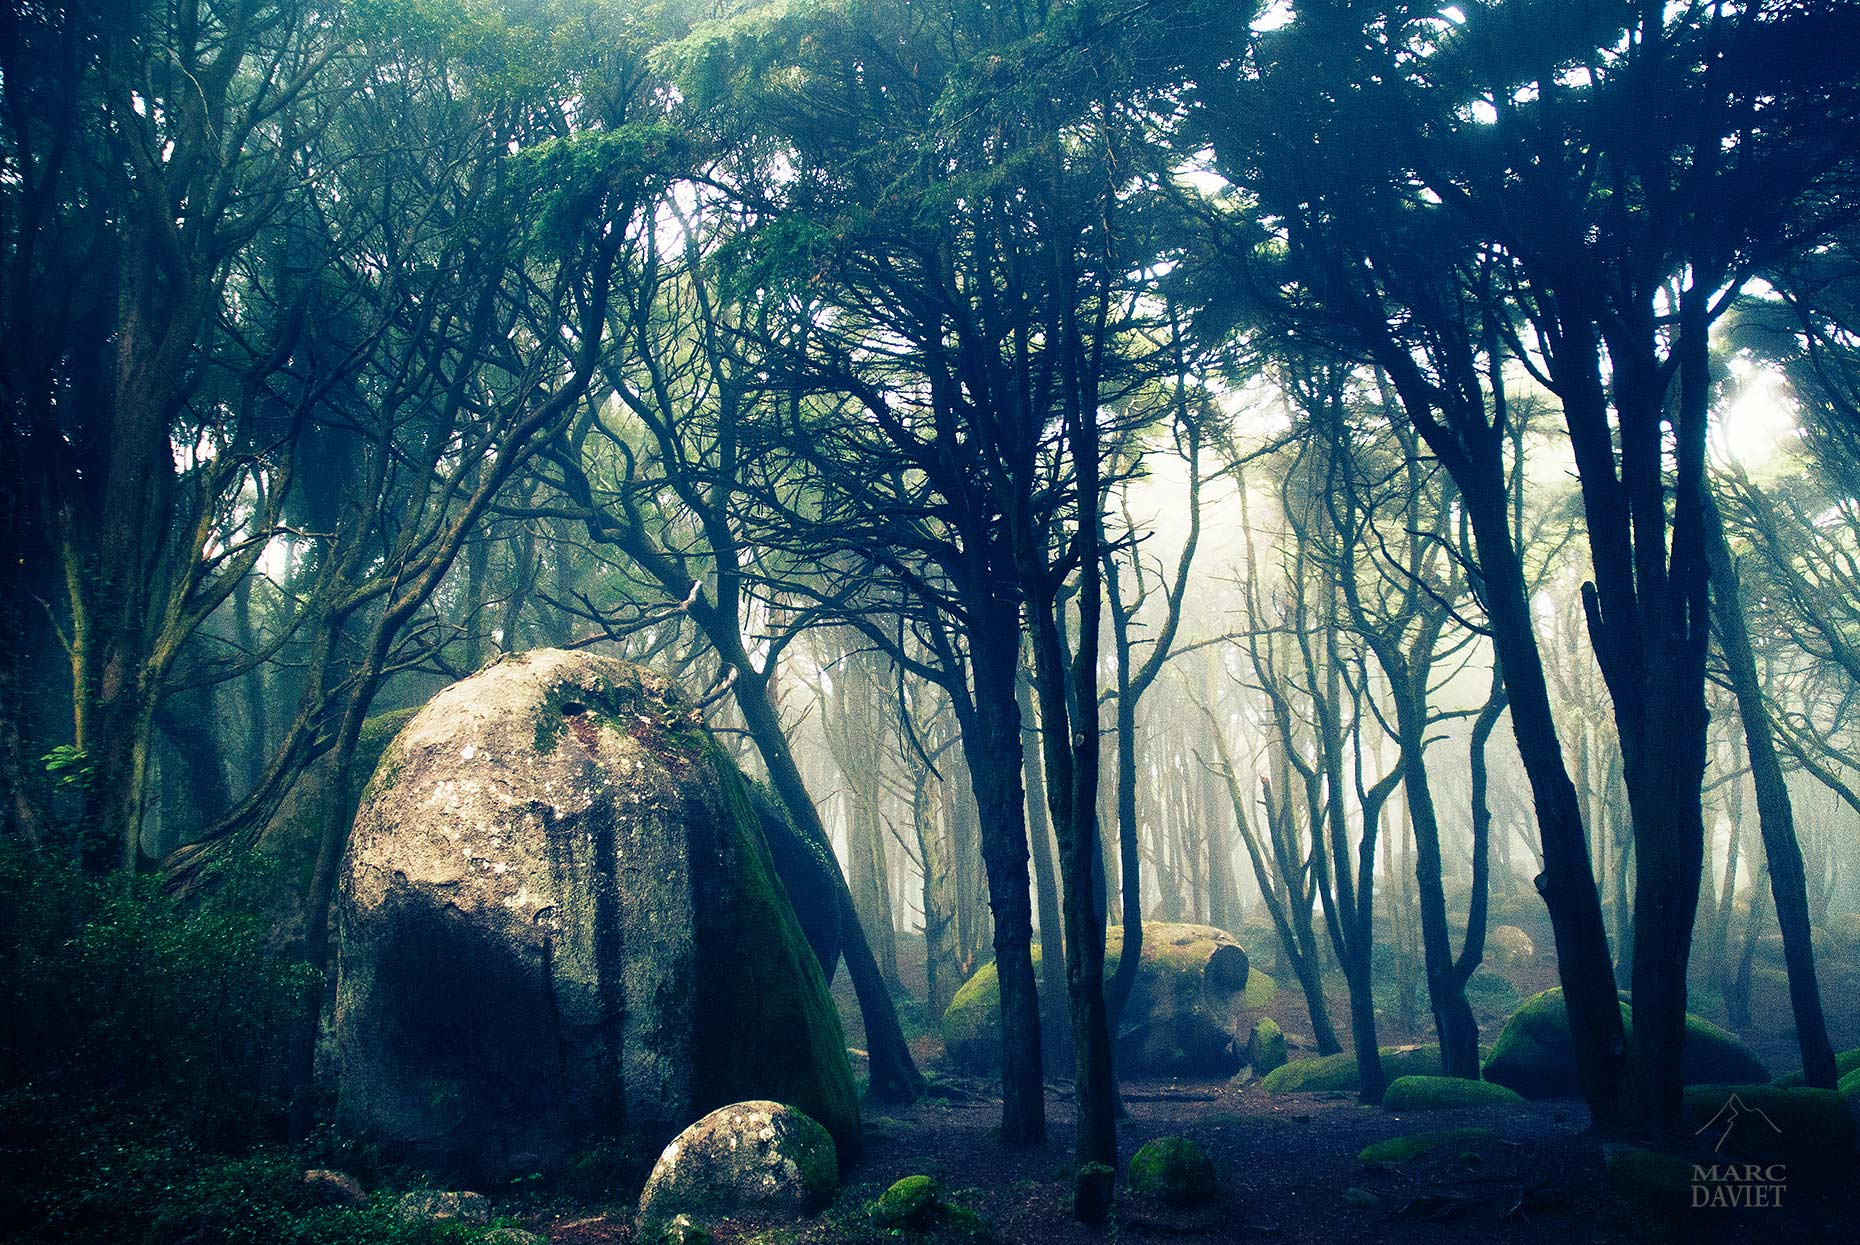 Sintra - Marc Daviet Photography